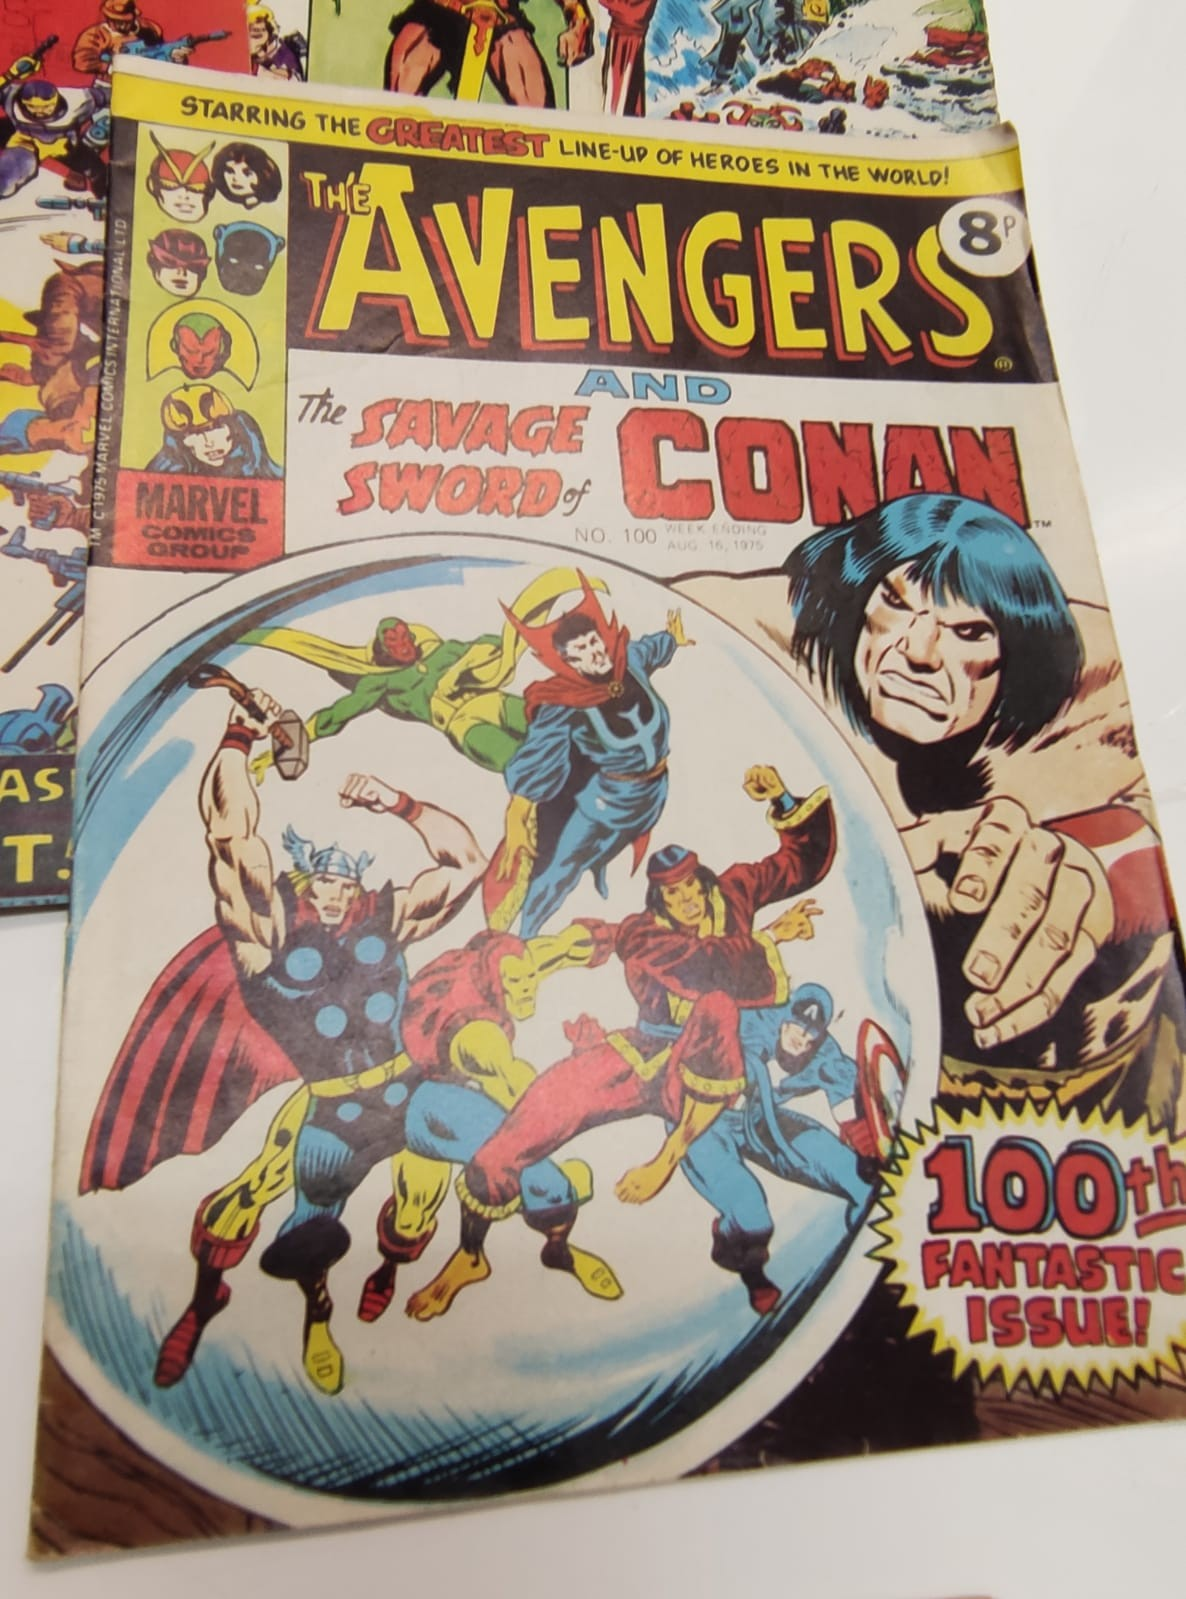 25 x Marvel comics. The Avengers. Dating from 1974-1976 - Image 16 of 18